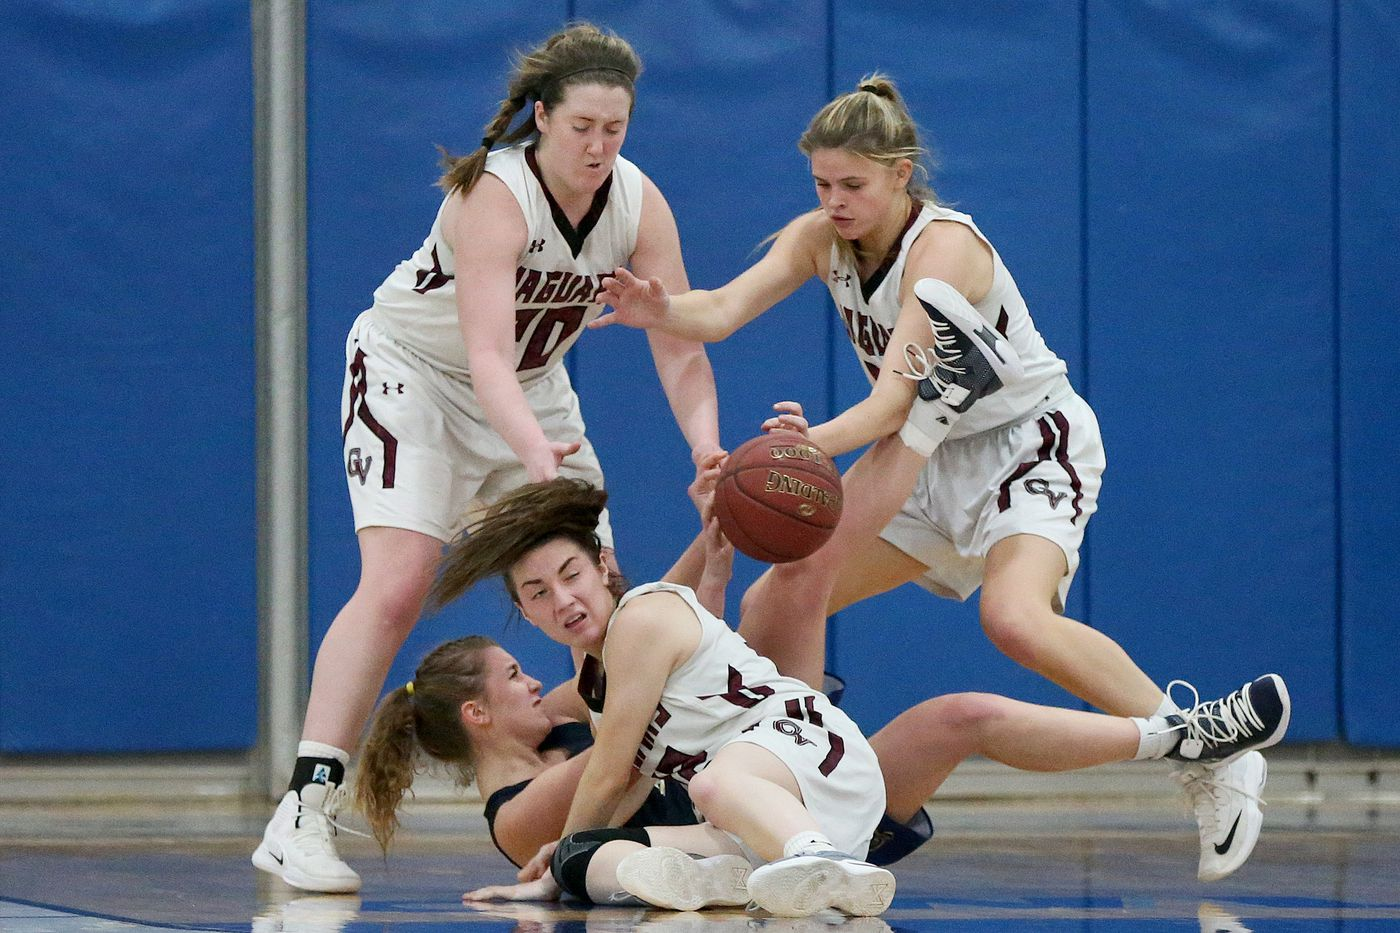 Garnet Valley's Emily McAteer (left), Madi McKee (center, on floor) and Jillian Nagy defend as Spring-Ford's Olivia Olsen tries to throw a pass.